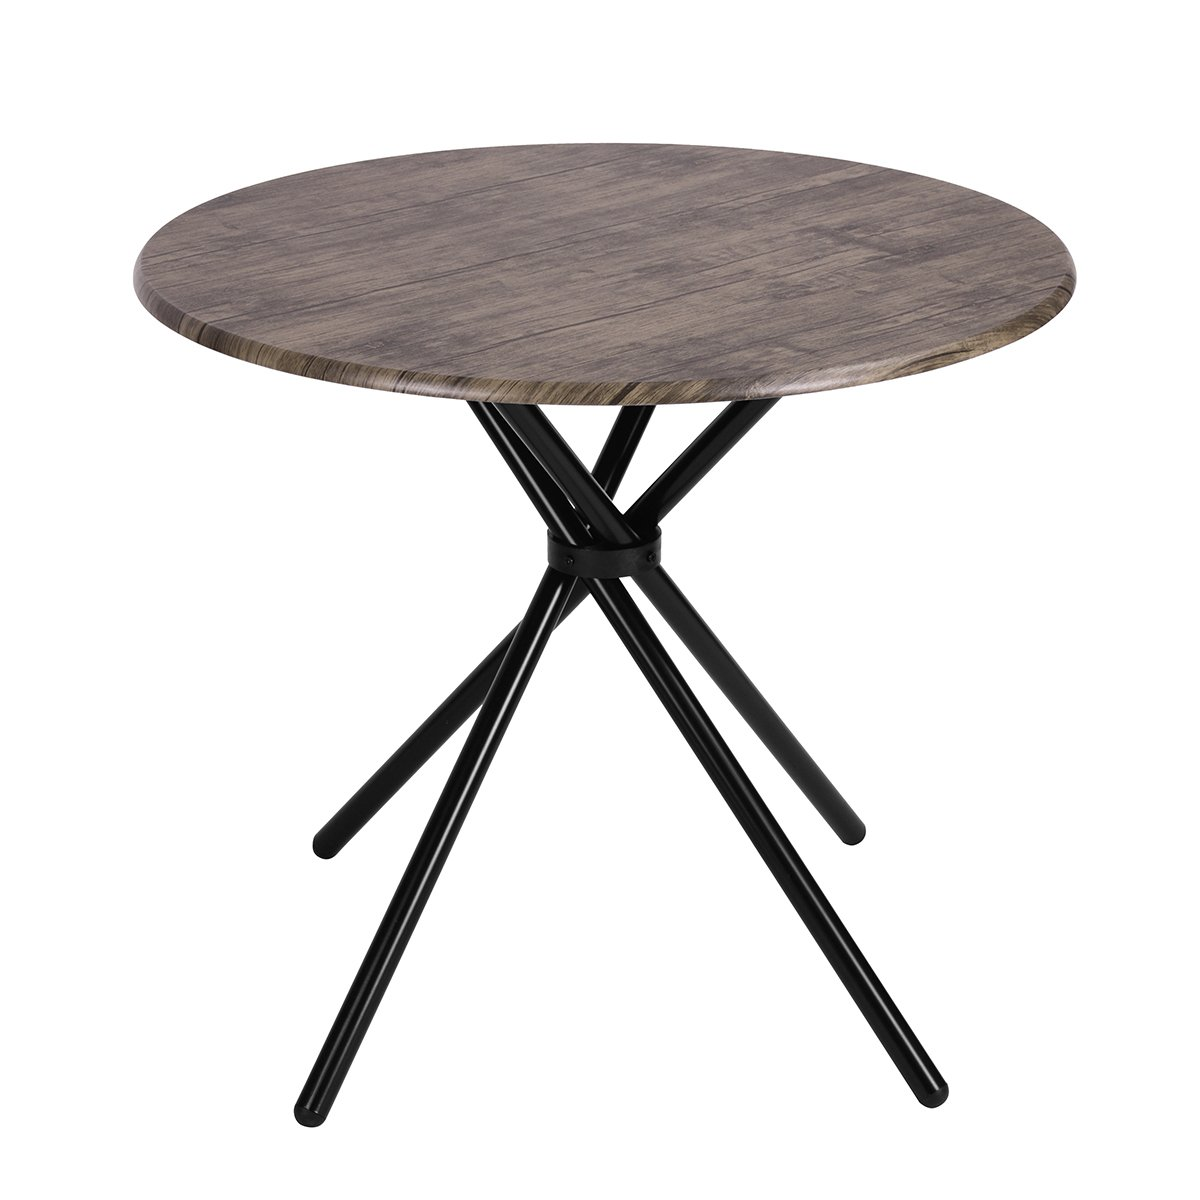 Kitchen Dining Table Industrial Brown Round Mid-Century Wood Coffee Table Office Home Easy-Assembly 35.4x35.4x29.5 Inches for for Living Drawing Receiving Room